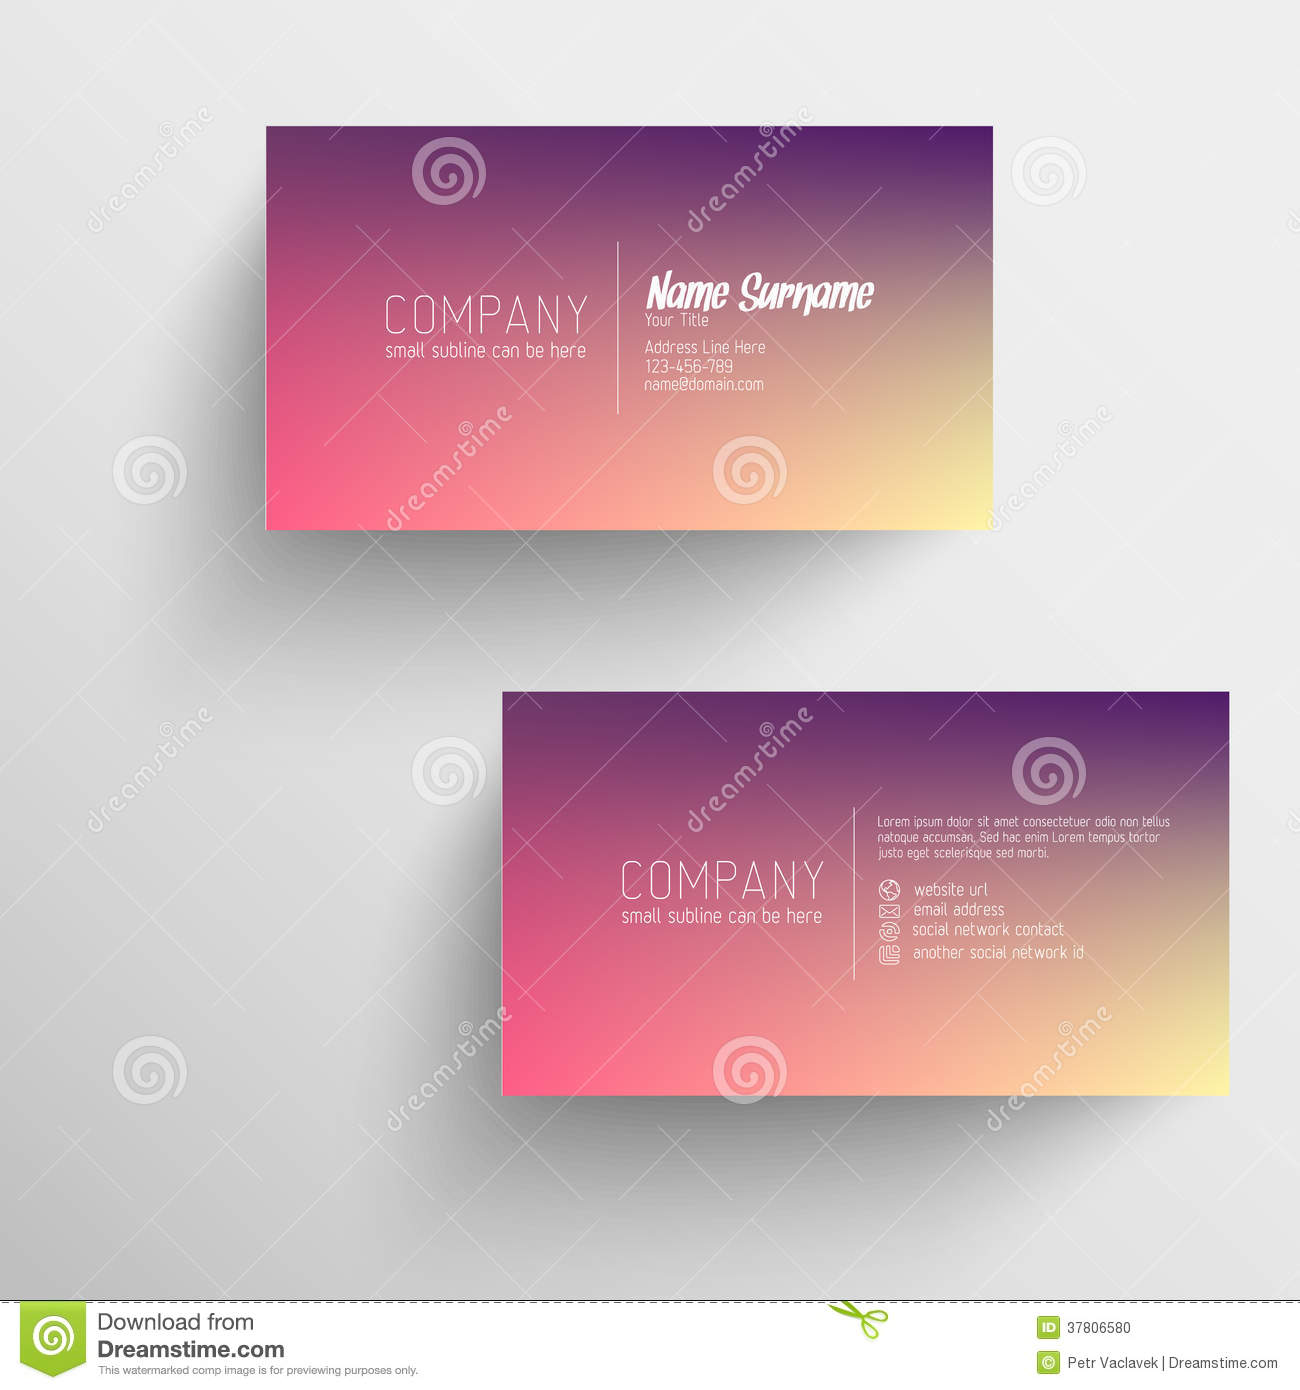 Modern Business Card Template With Blurred Background